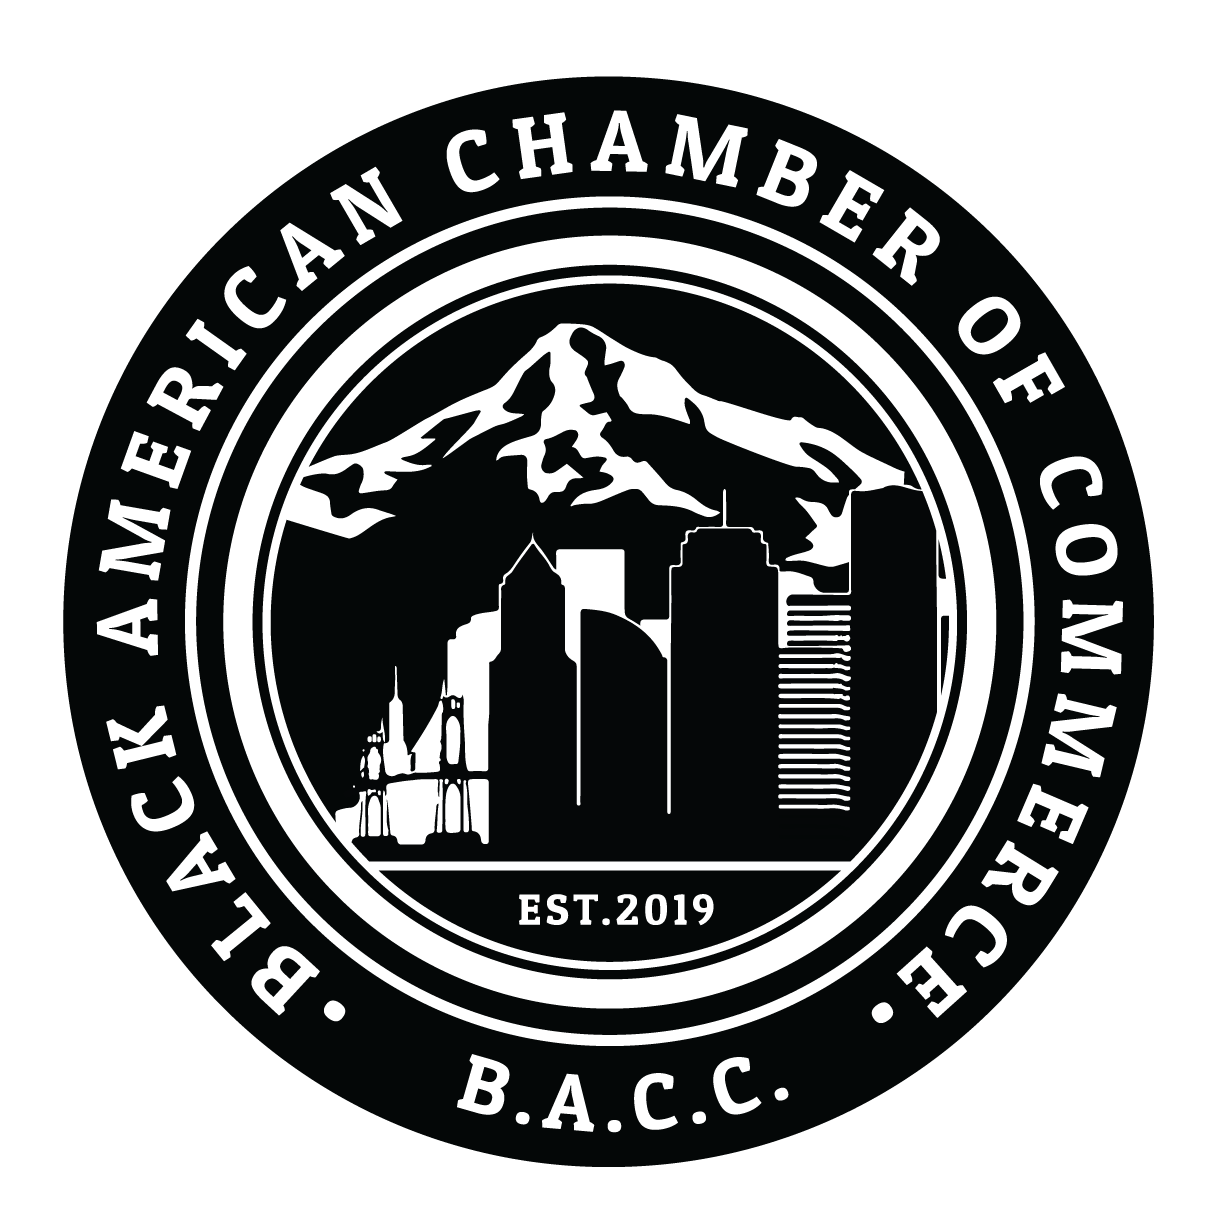 Black American Chamber of Commerce